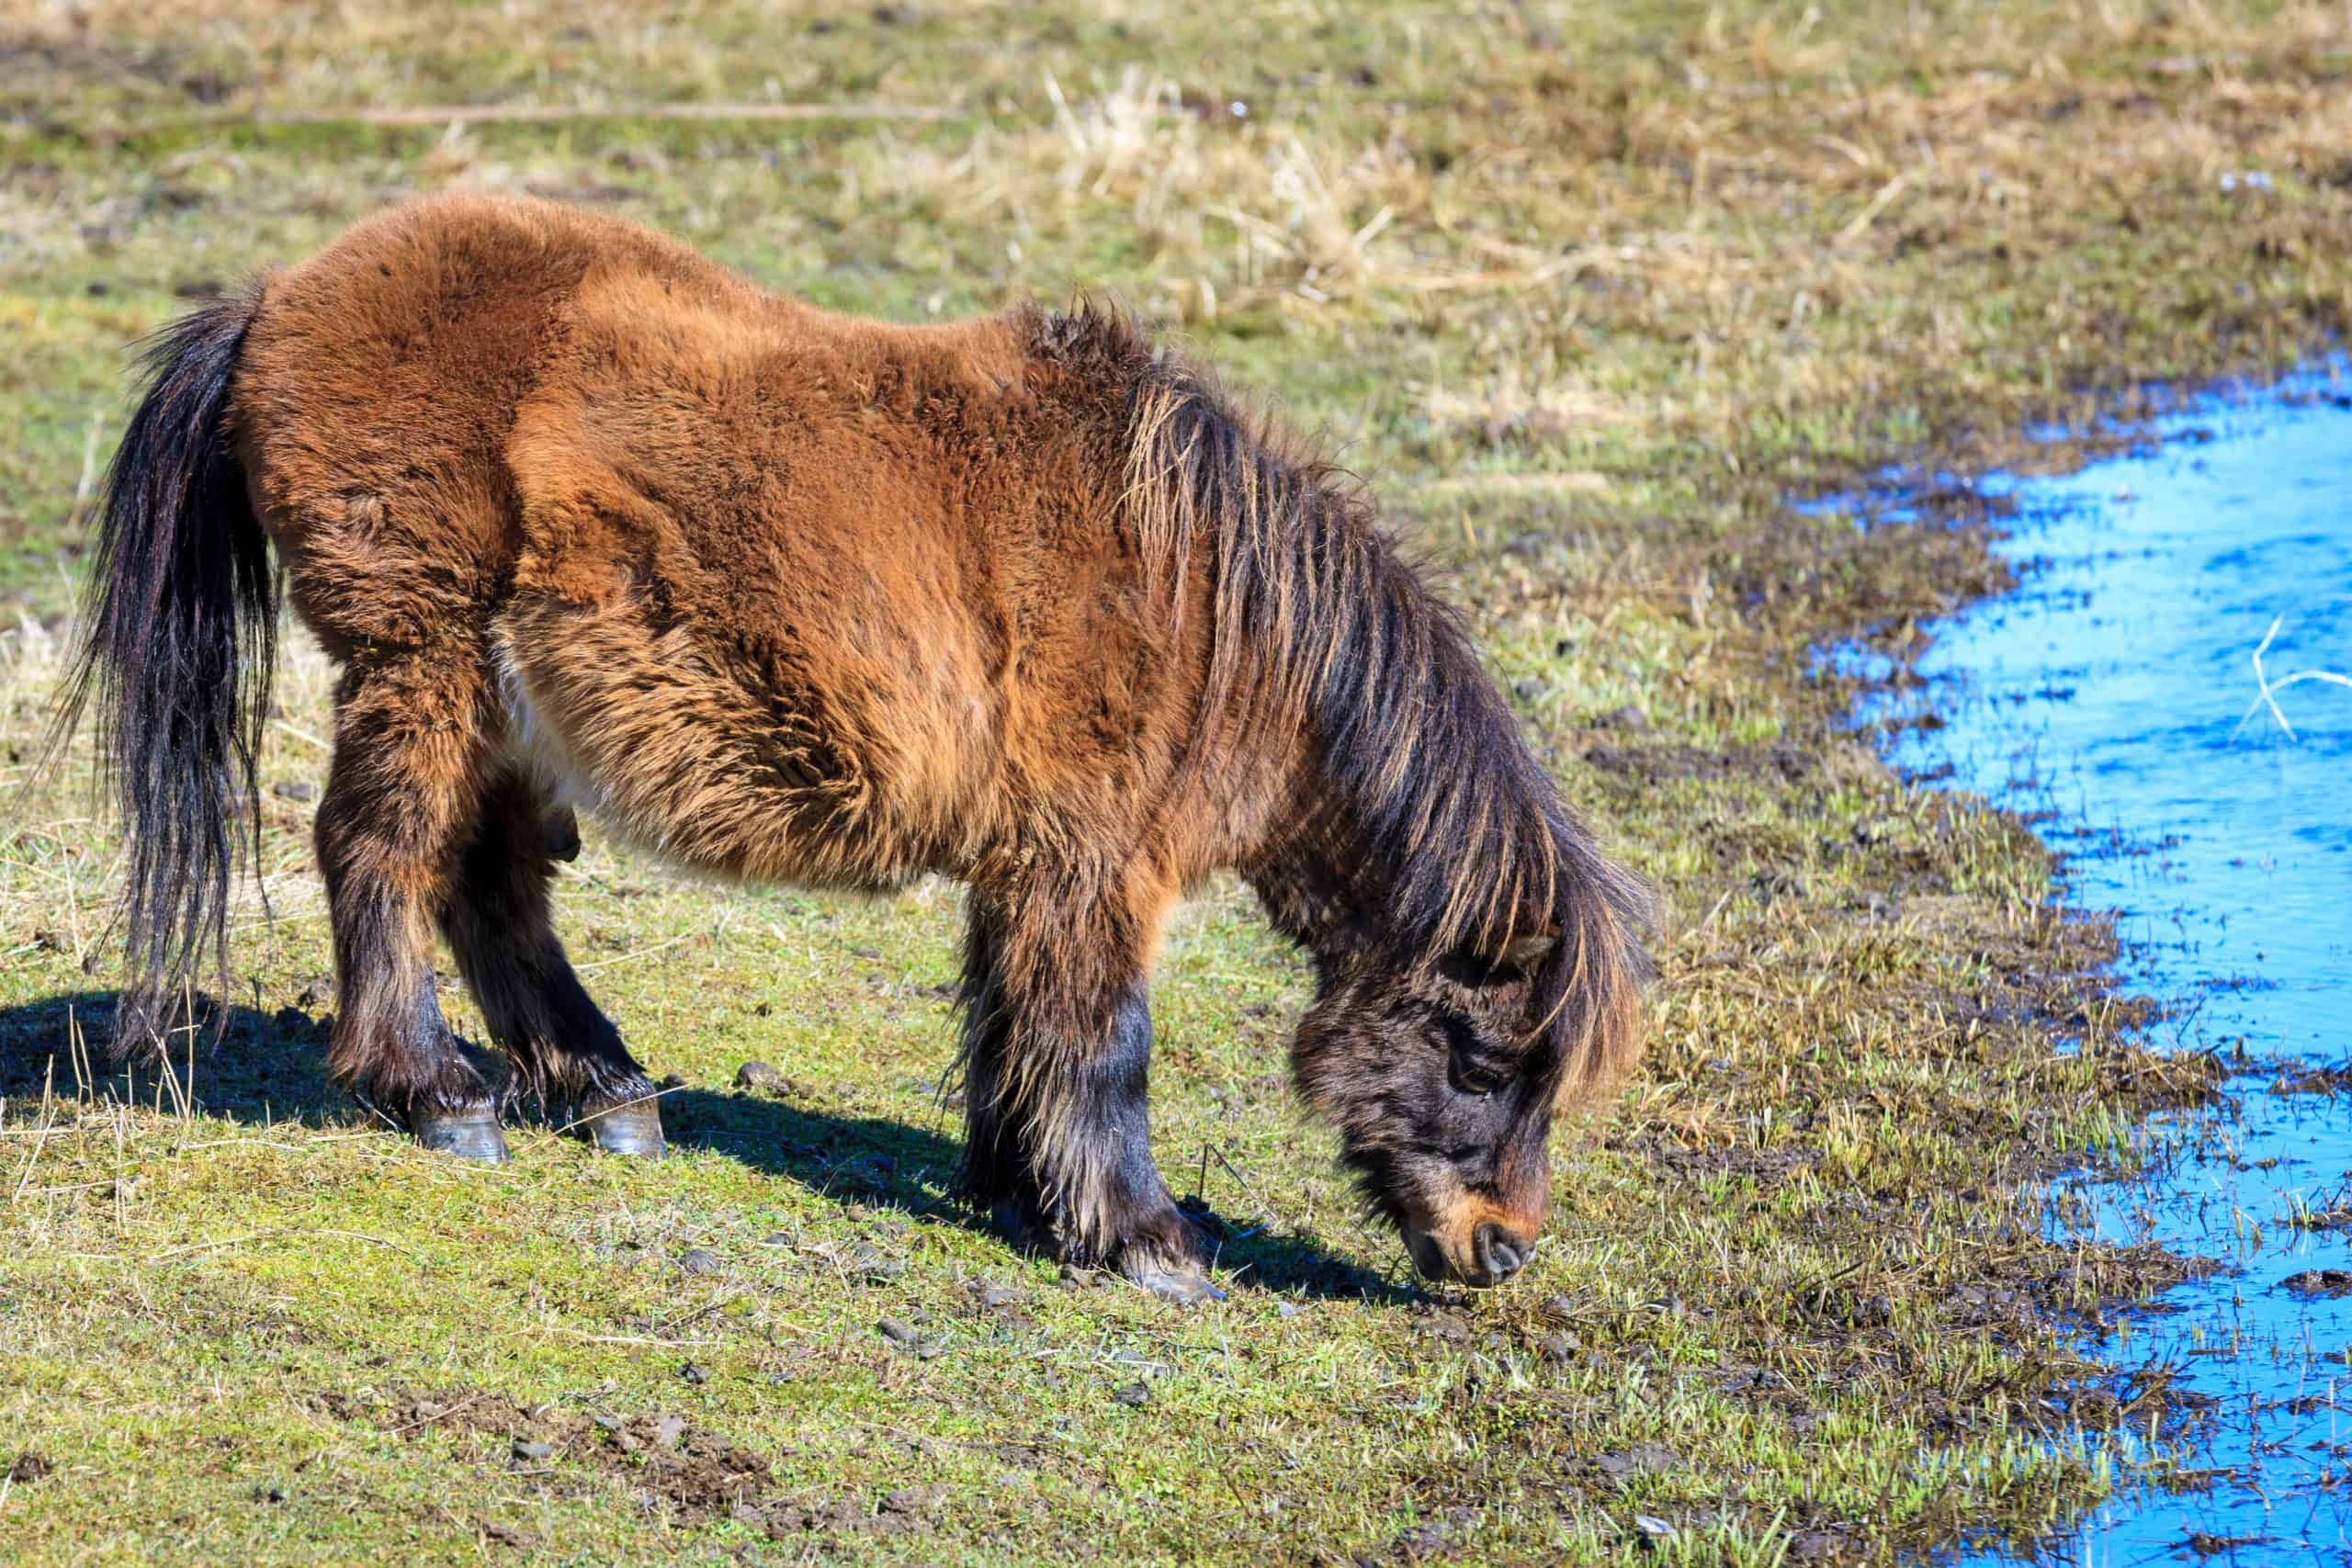 A miniature horse grazes on grass by the stream near Harrison, Idaho.